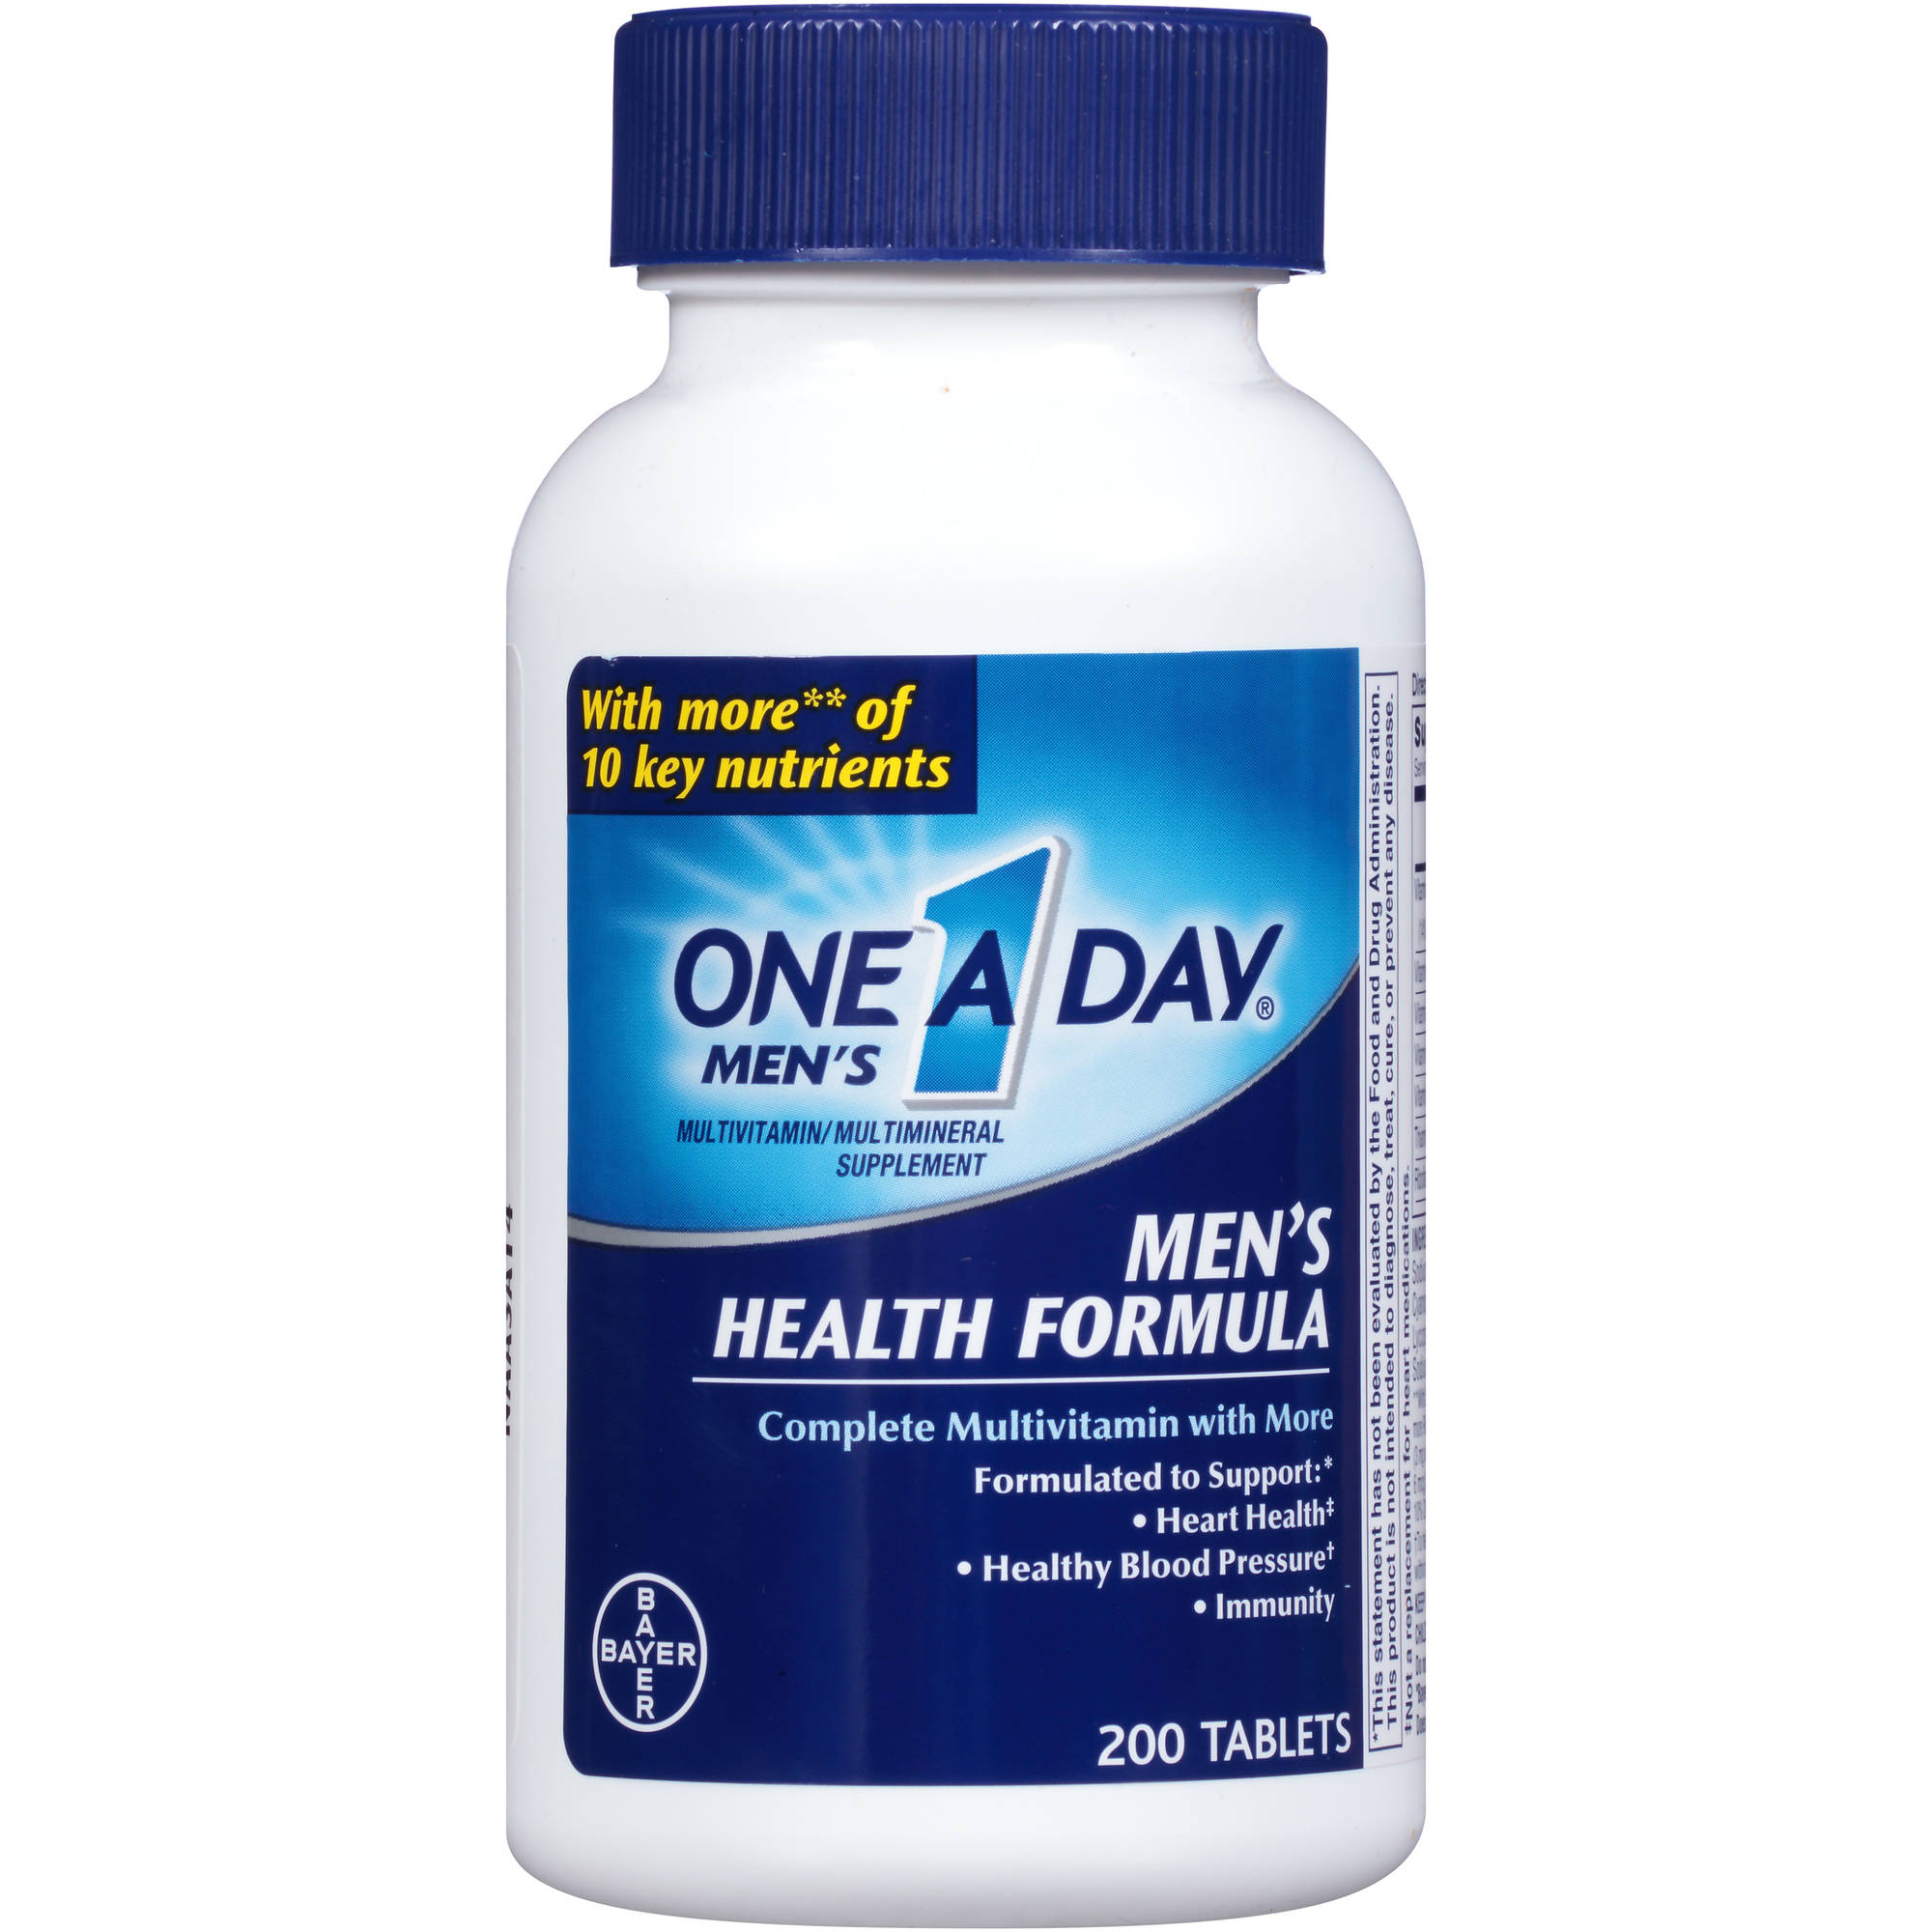 One A Day Men's Health Formula Multivitamin/Multimineral Supplement Tablets, 200 count